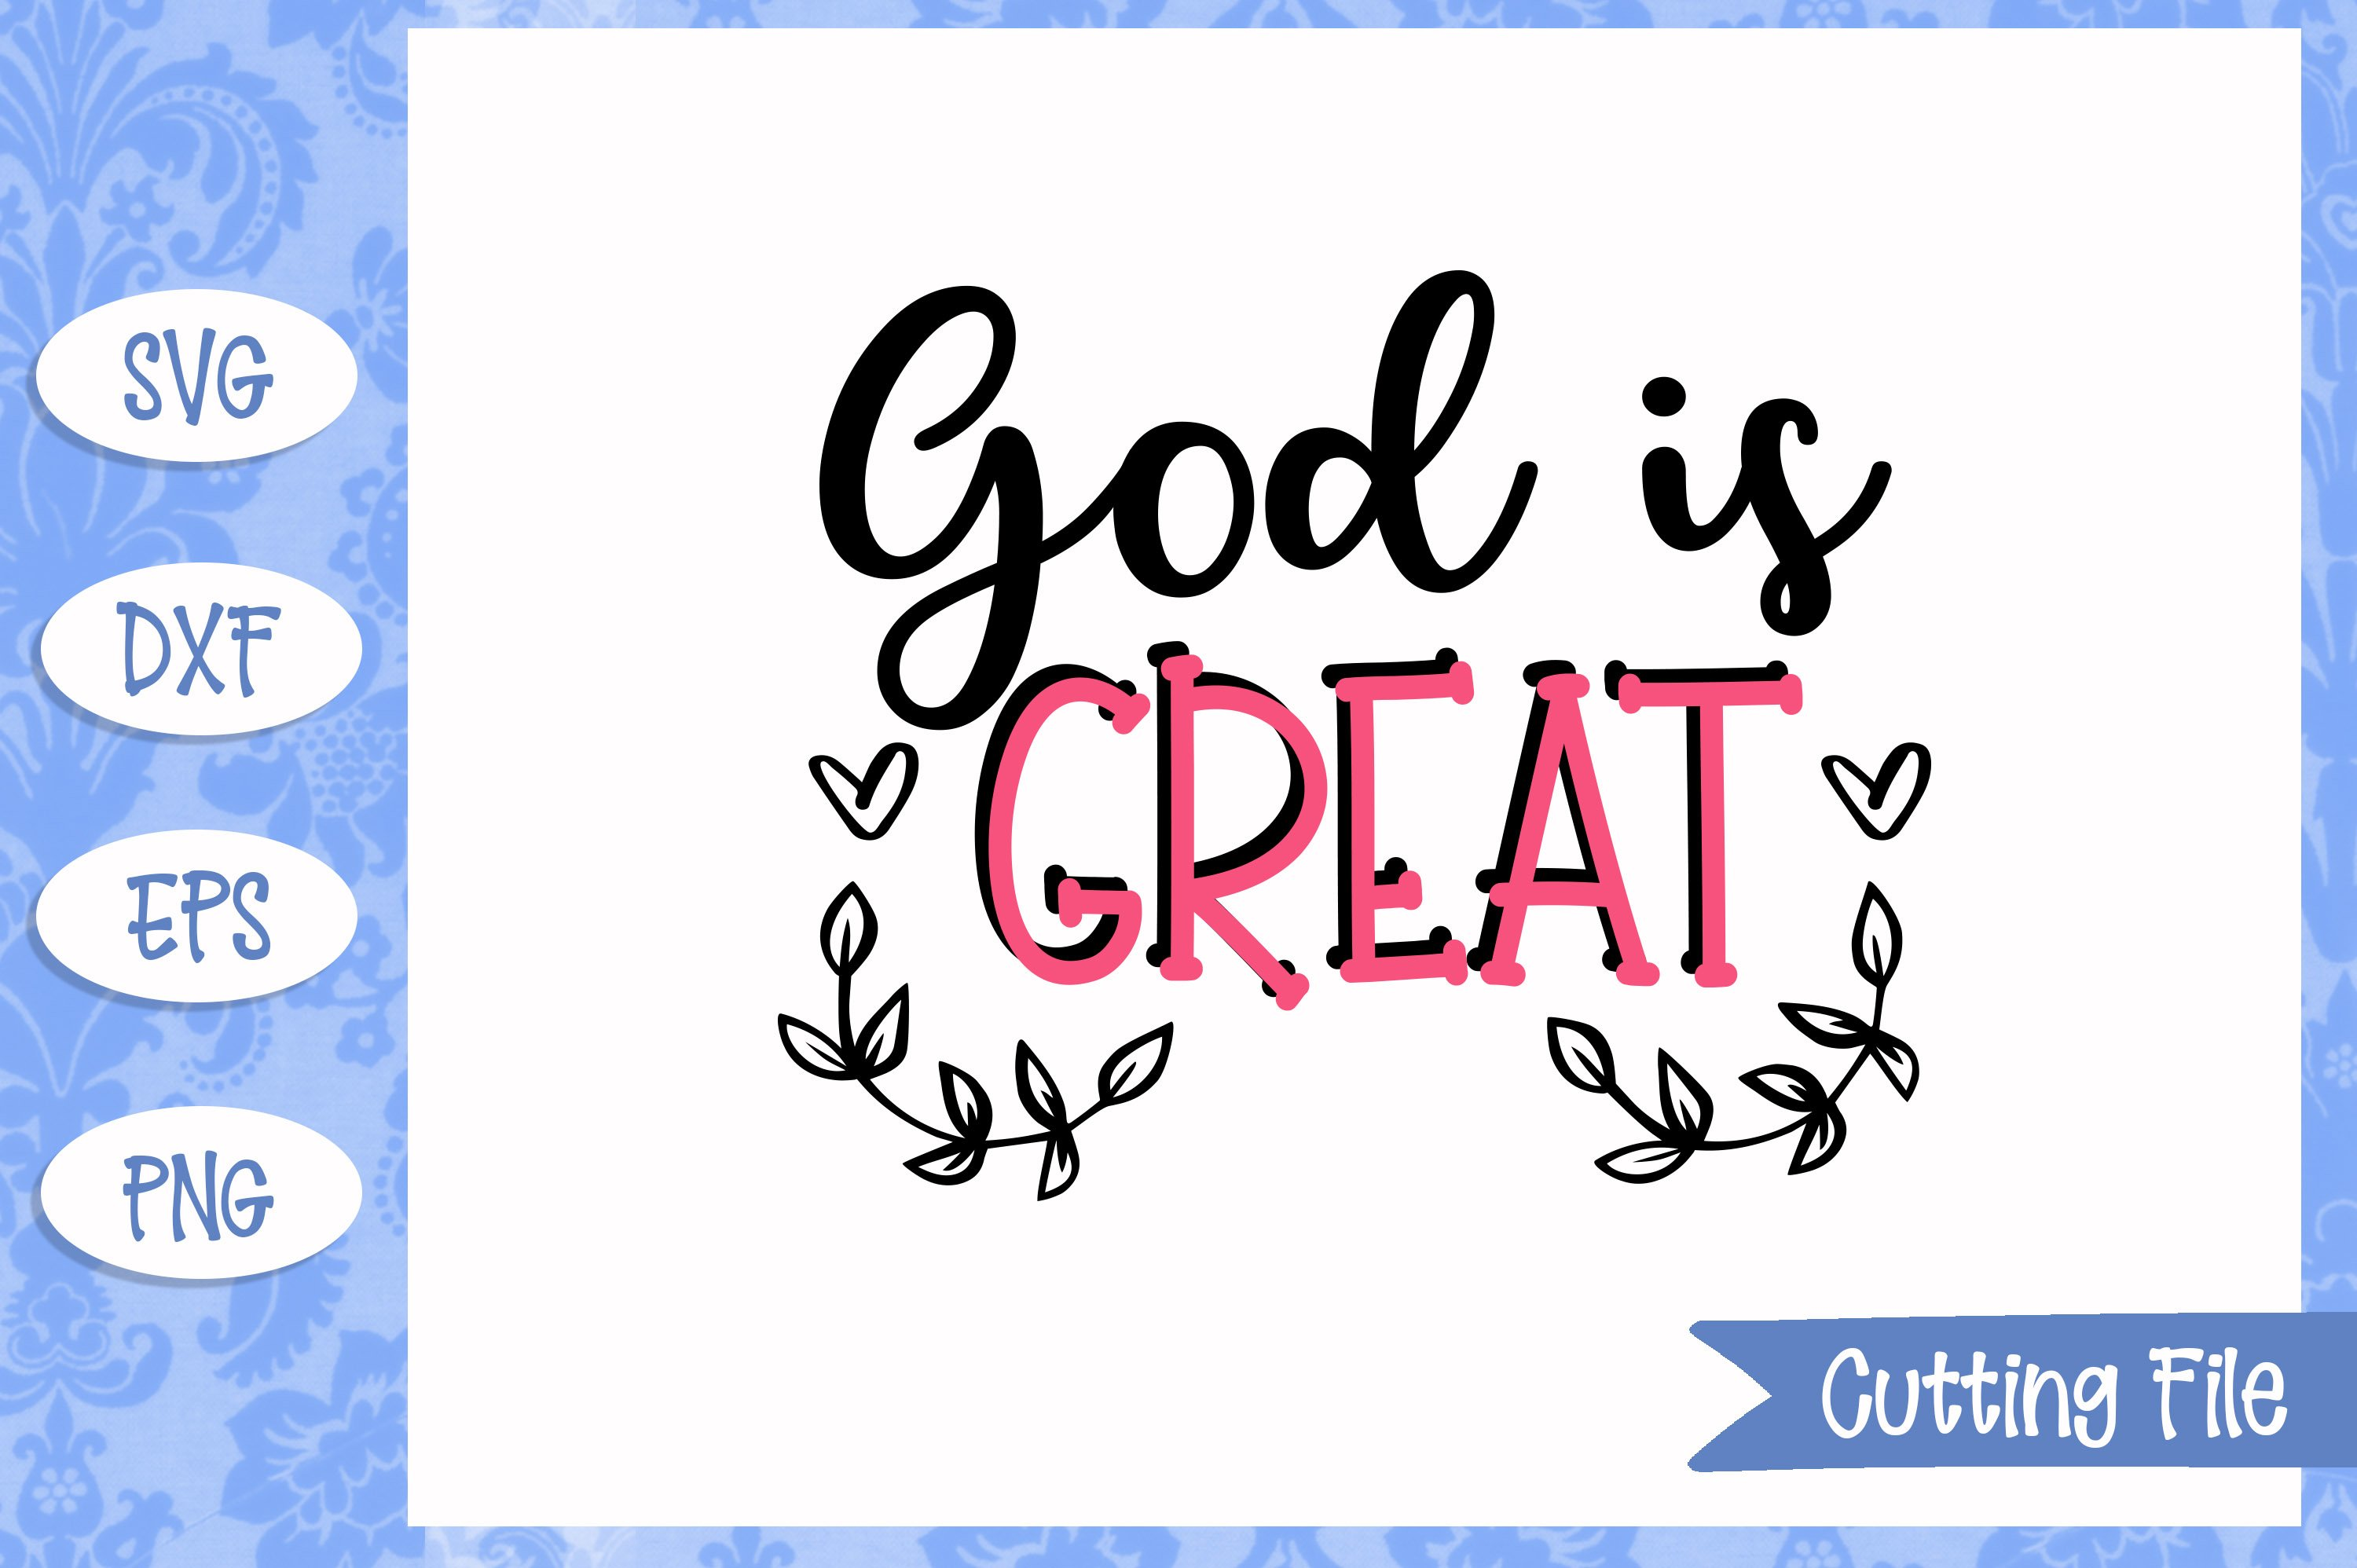 God is great SVG File example image 1